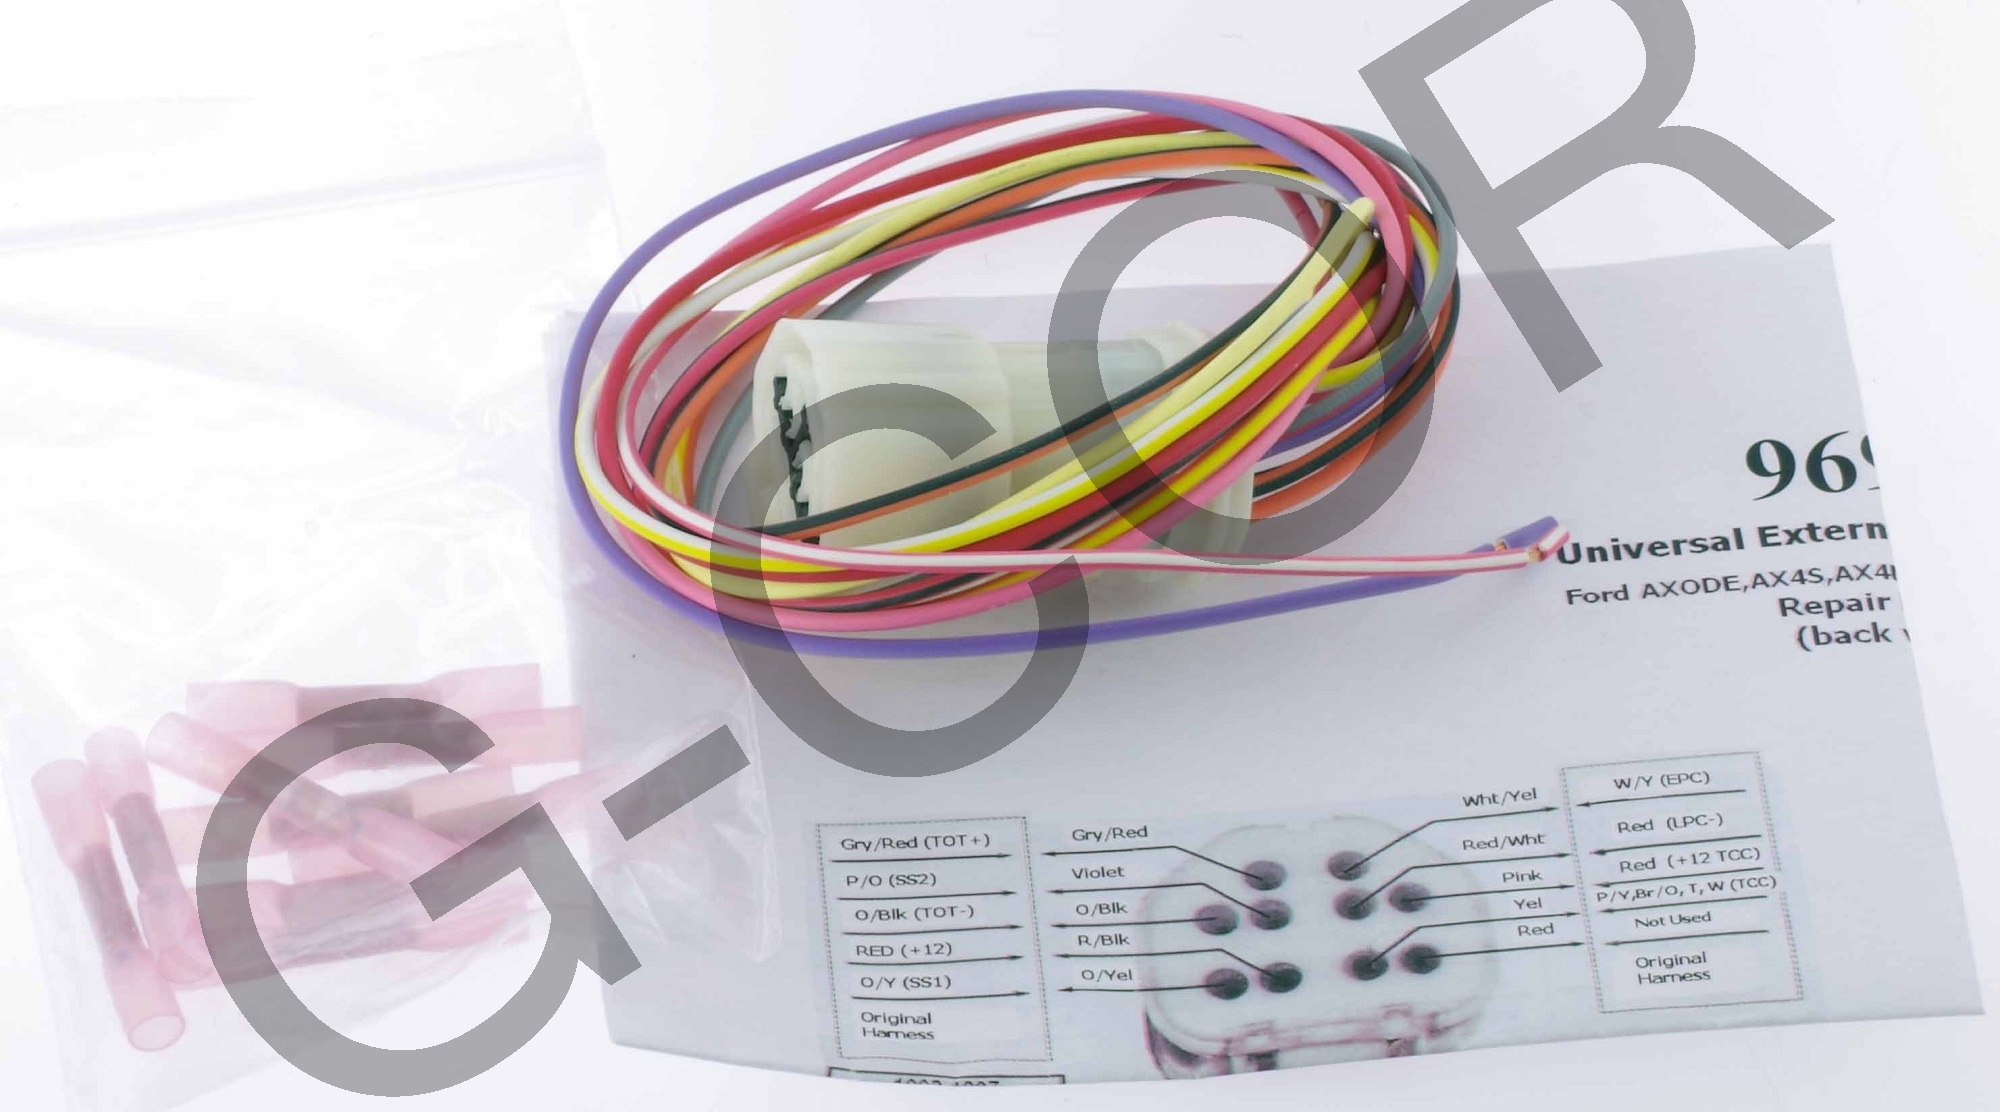 Axode 4r70w External Wire Harness New 96986